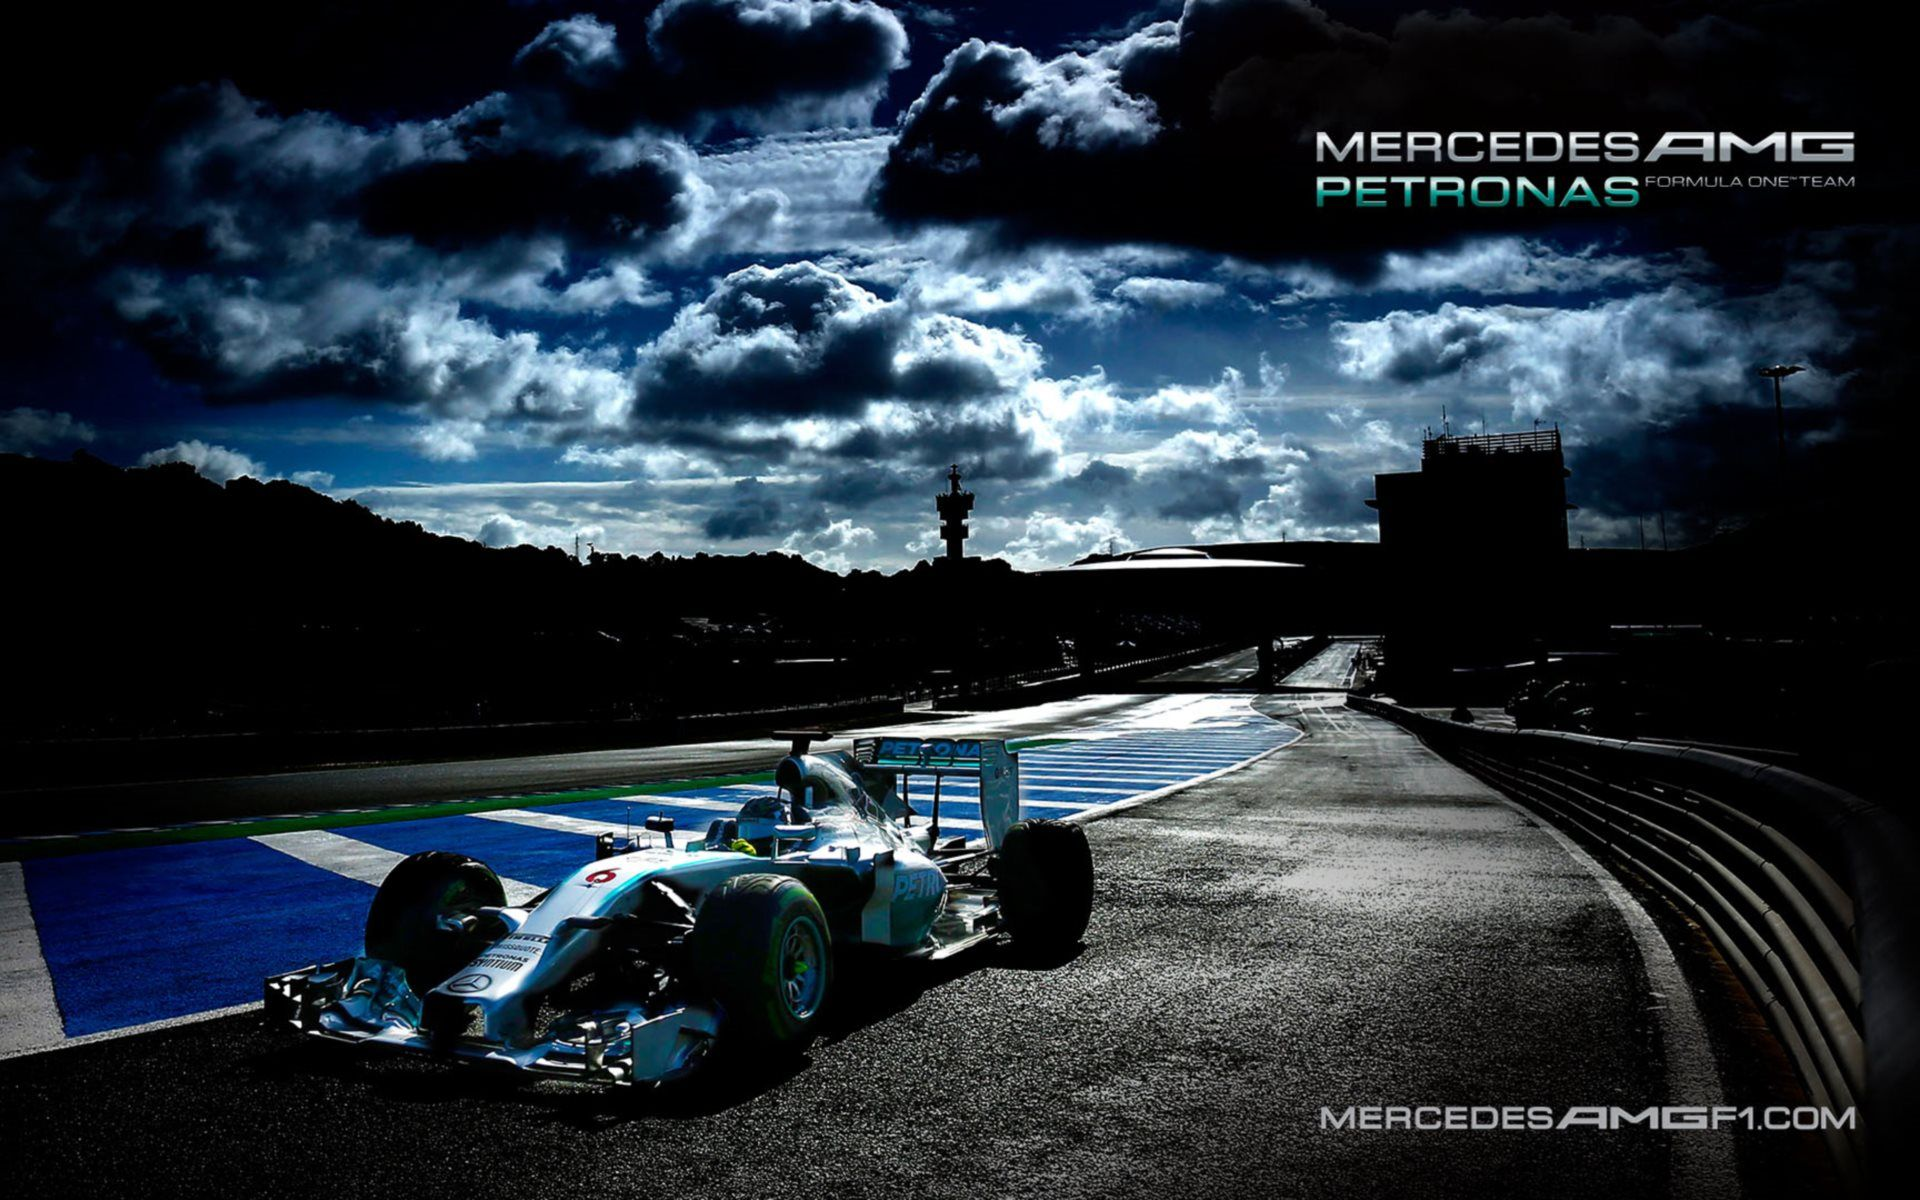 Wallpaper Android Motorsport: F1 Mercedes Wallpaper For Android #lW7